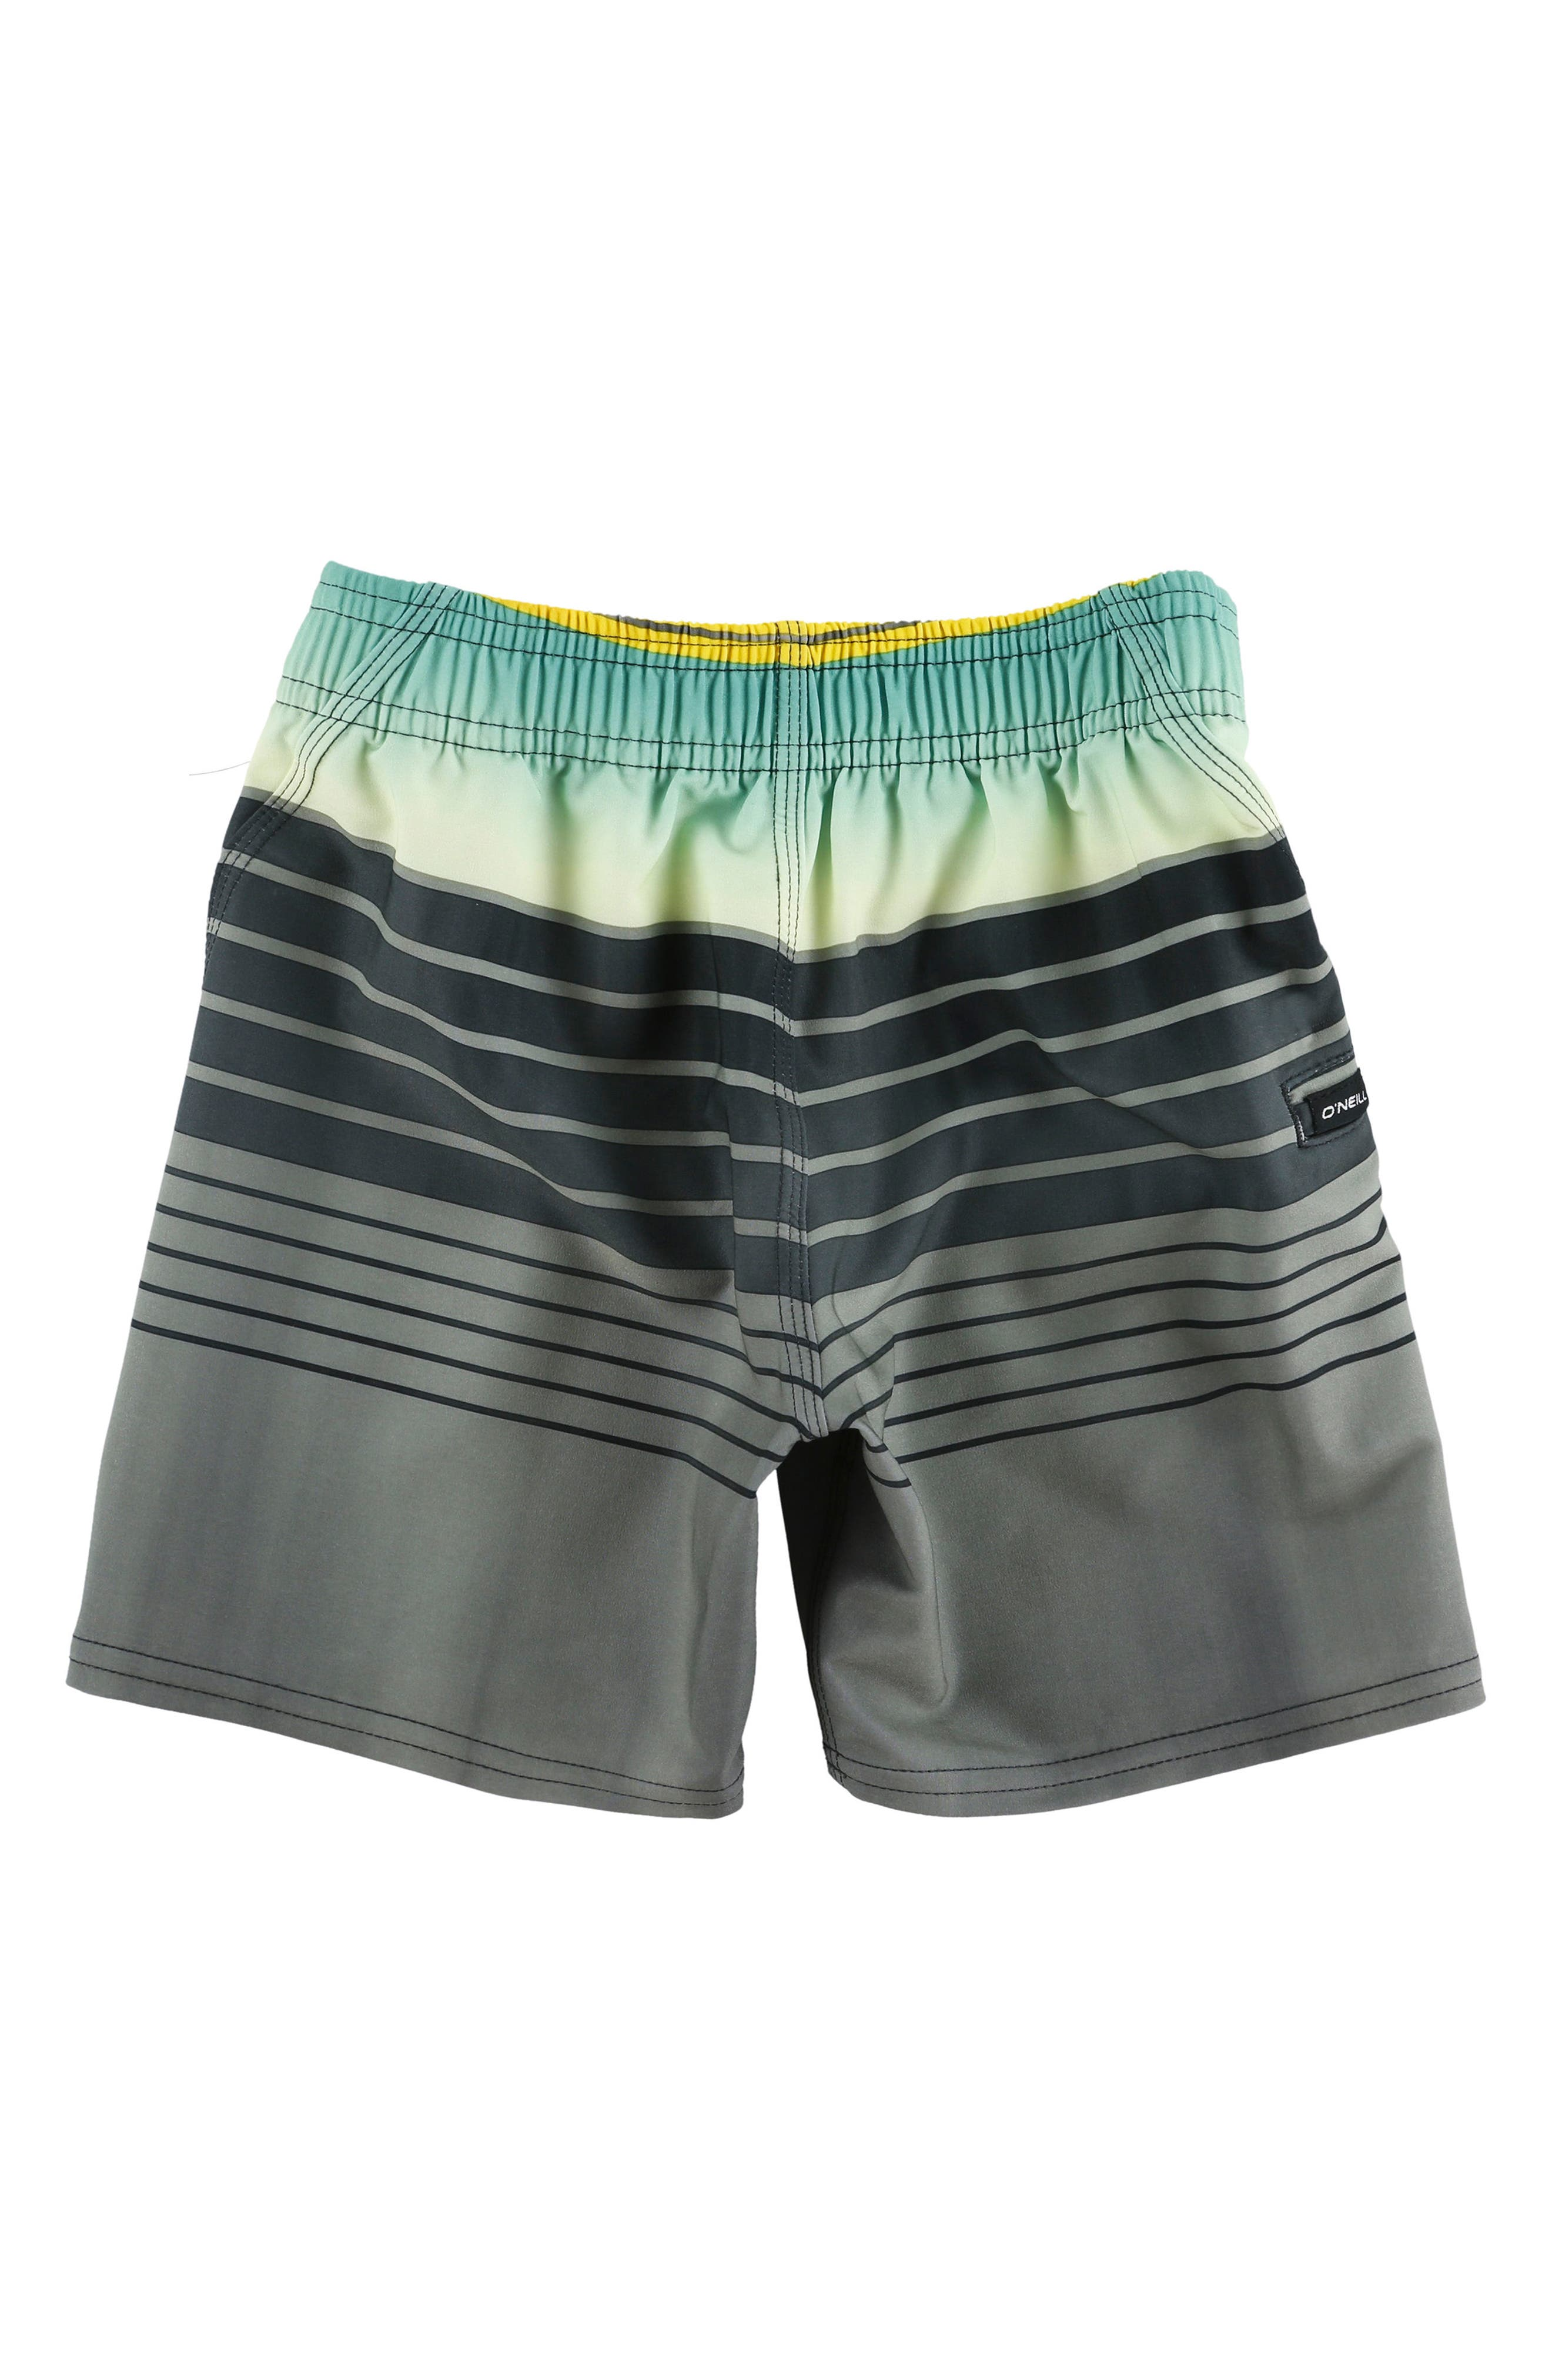 Hyperfreak Heist Board Shorts,                             Alternate thumbnail 18, color,